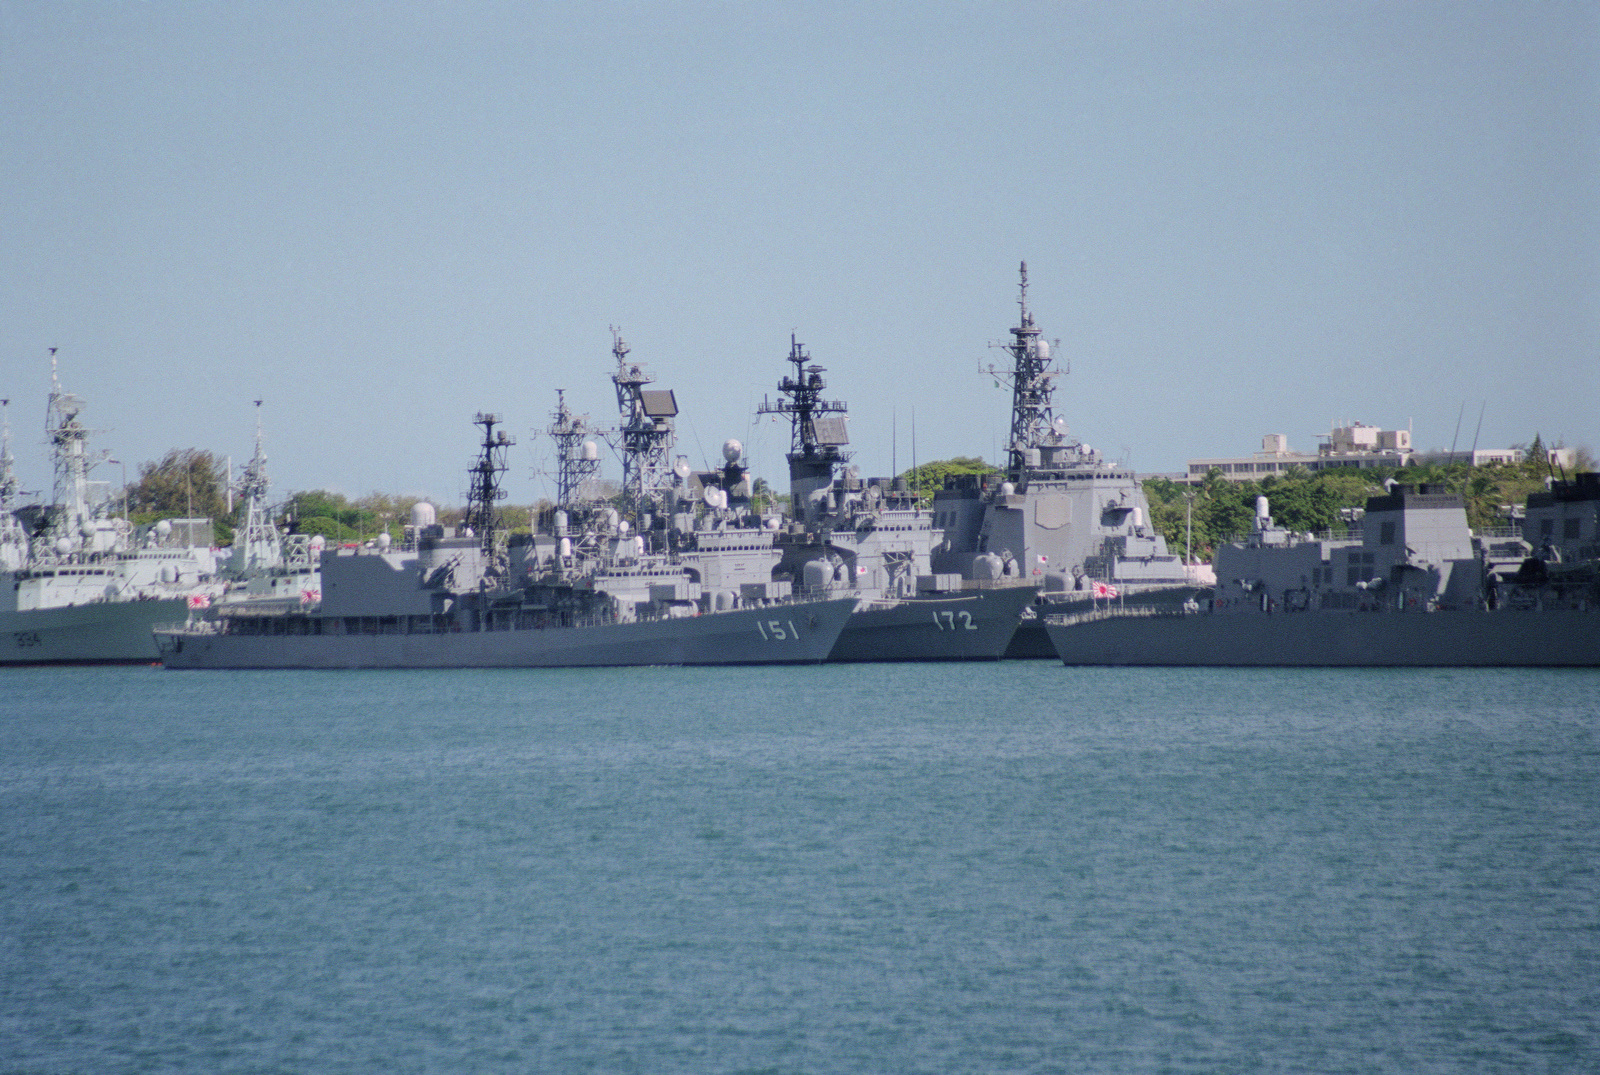 Units of the Japanese Defense Force are shown tied up at bravo pier no. 23. Visible are JDS (Japan Defense Ship) ASAGIRI (DD 151); JDS SHIMAKAZE (DDG 172) and JDS KONGO (DDG 173). Astern is the Canadian frigate HMCS (Her Majesty's Canadian Ship) REGINA (FFH 334). The ships are here to take part in Operation RIMPAC 2000